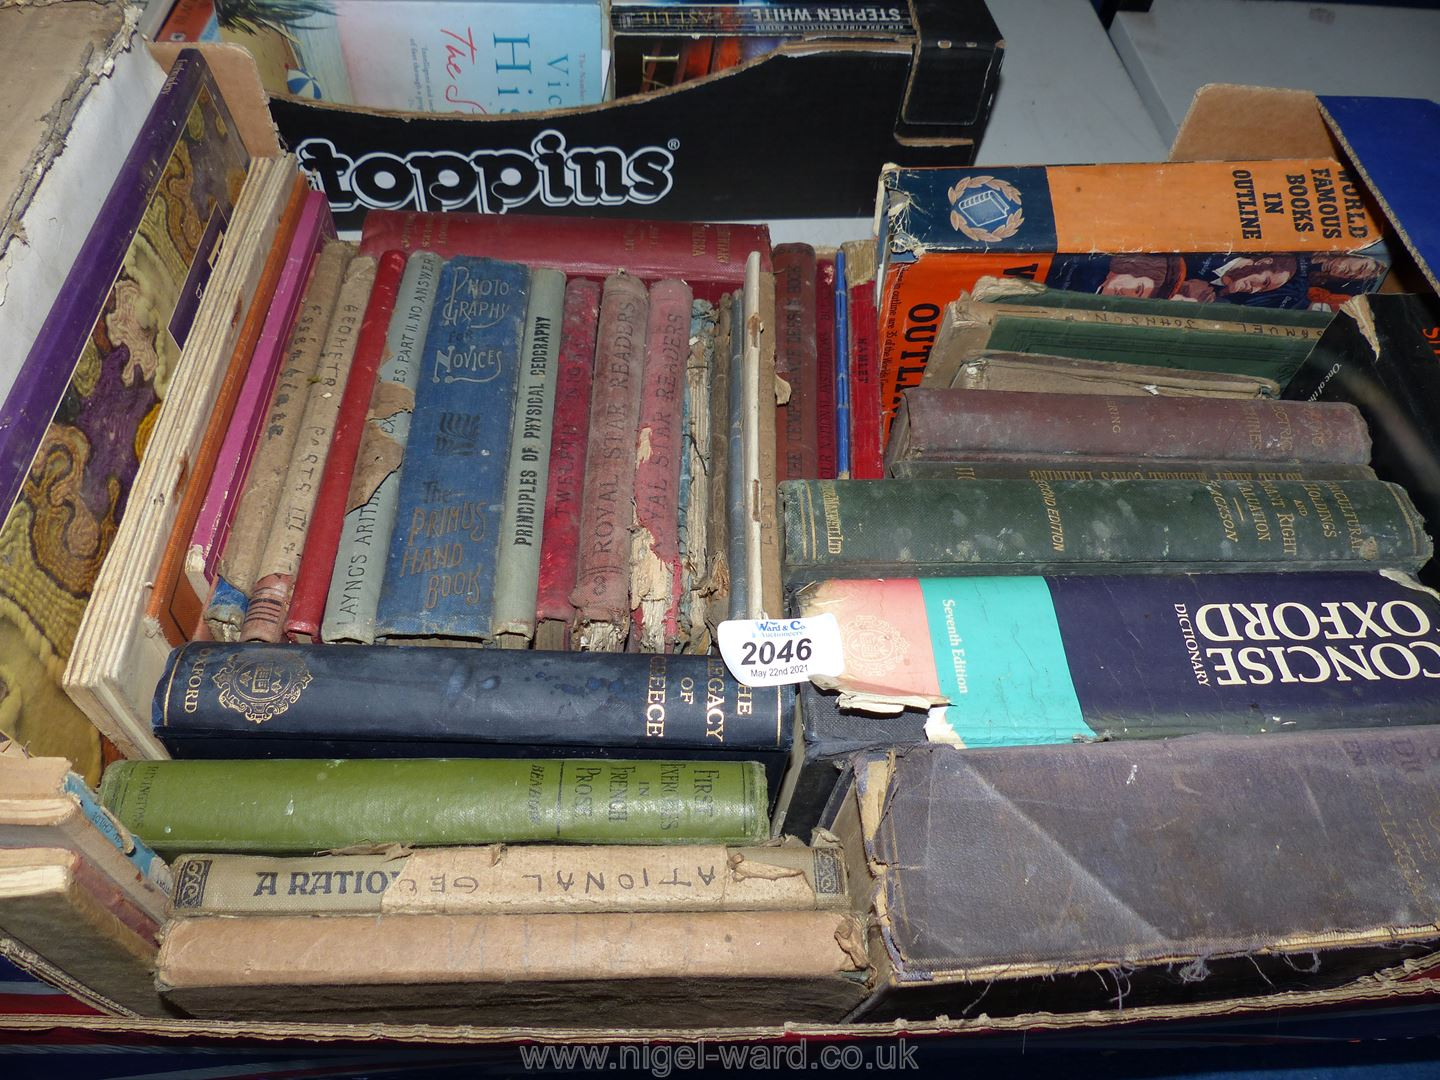 A box of vintage educational books including Thesaurus, dictionaries, Electric machines etc.